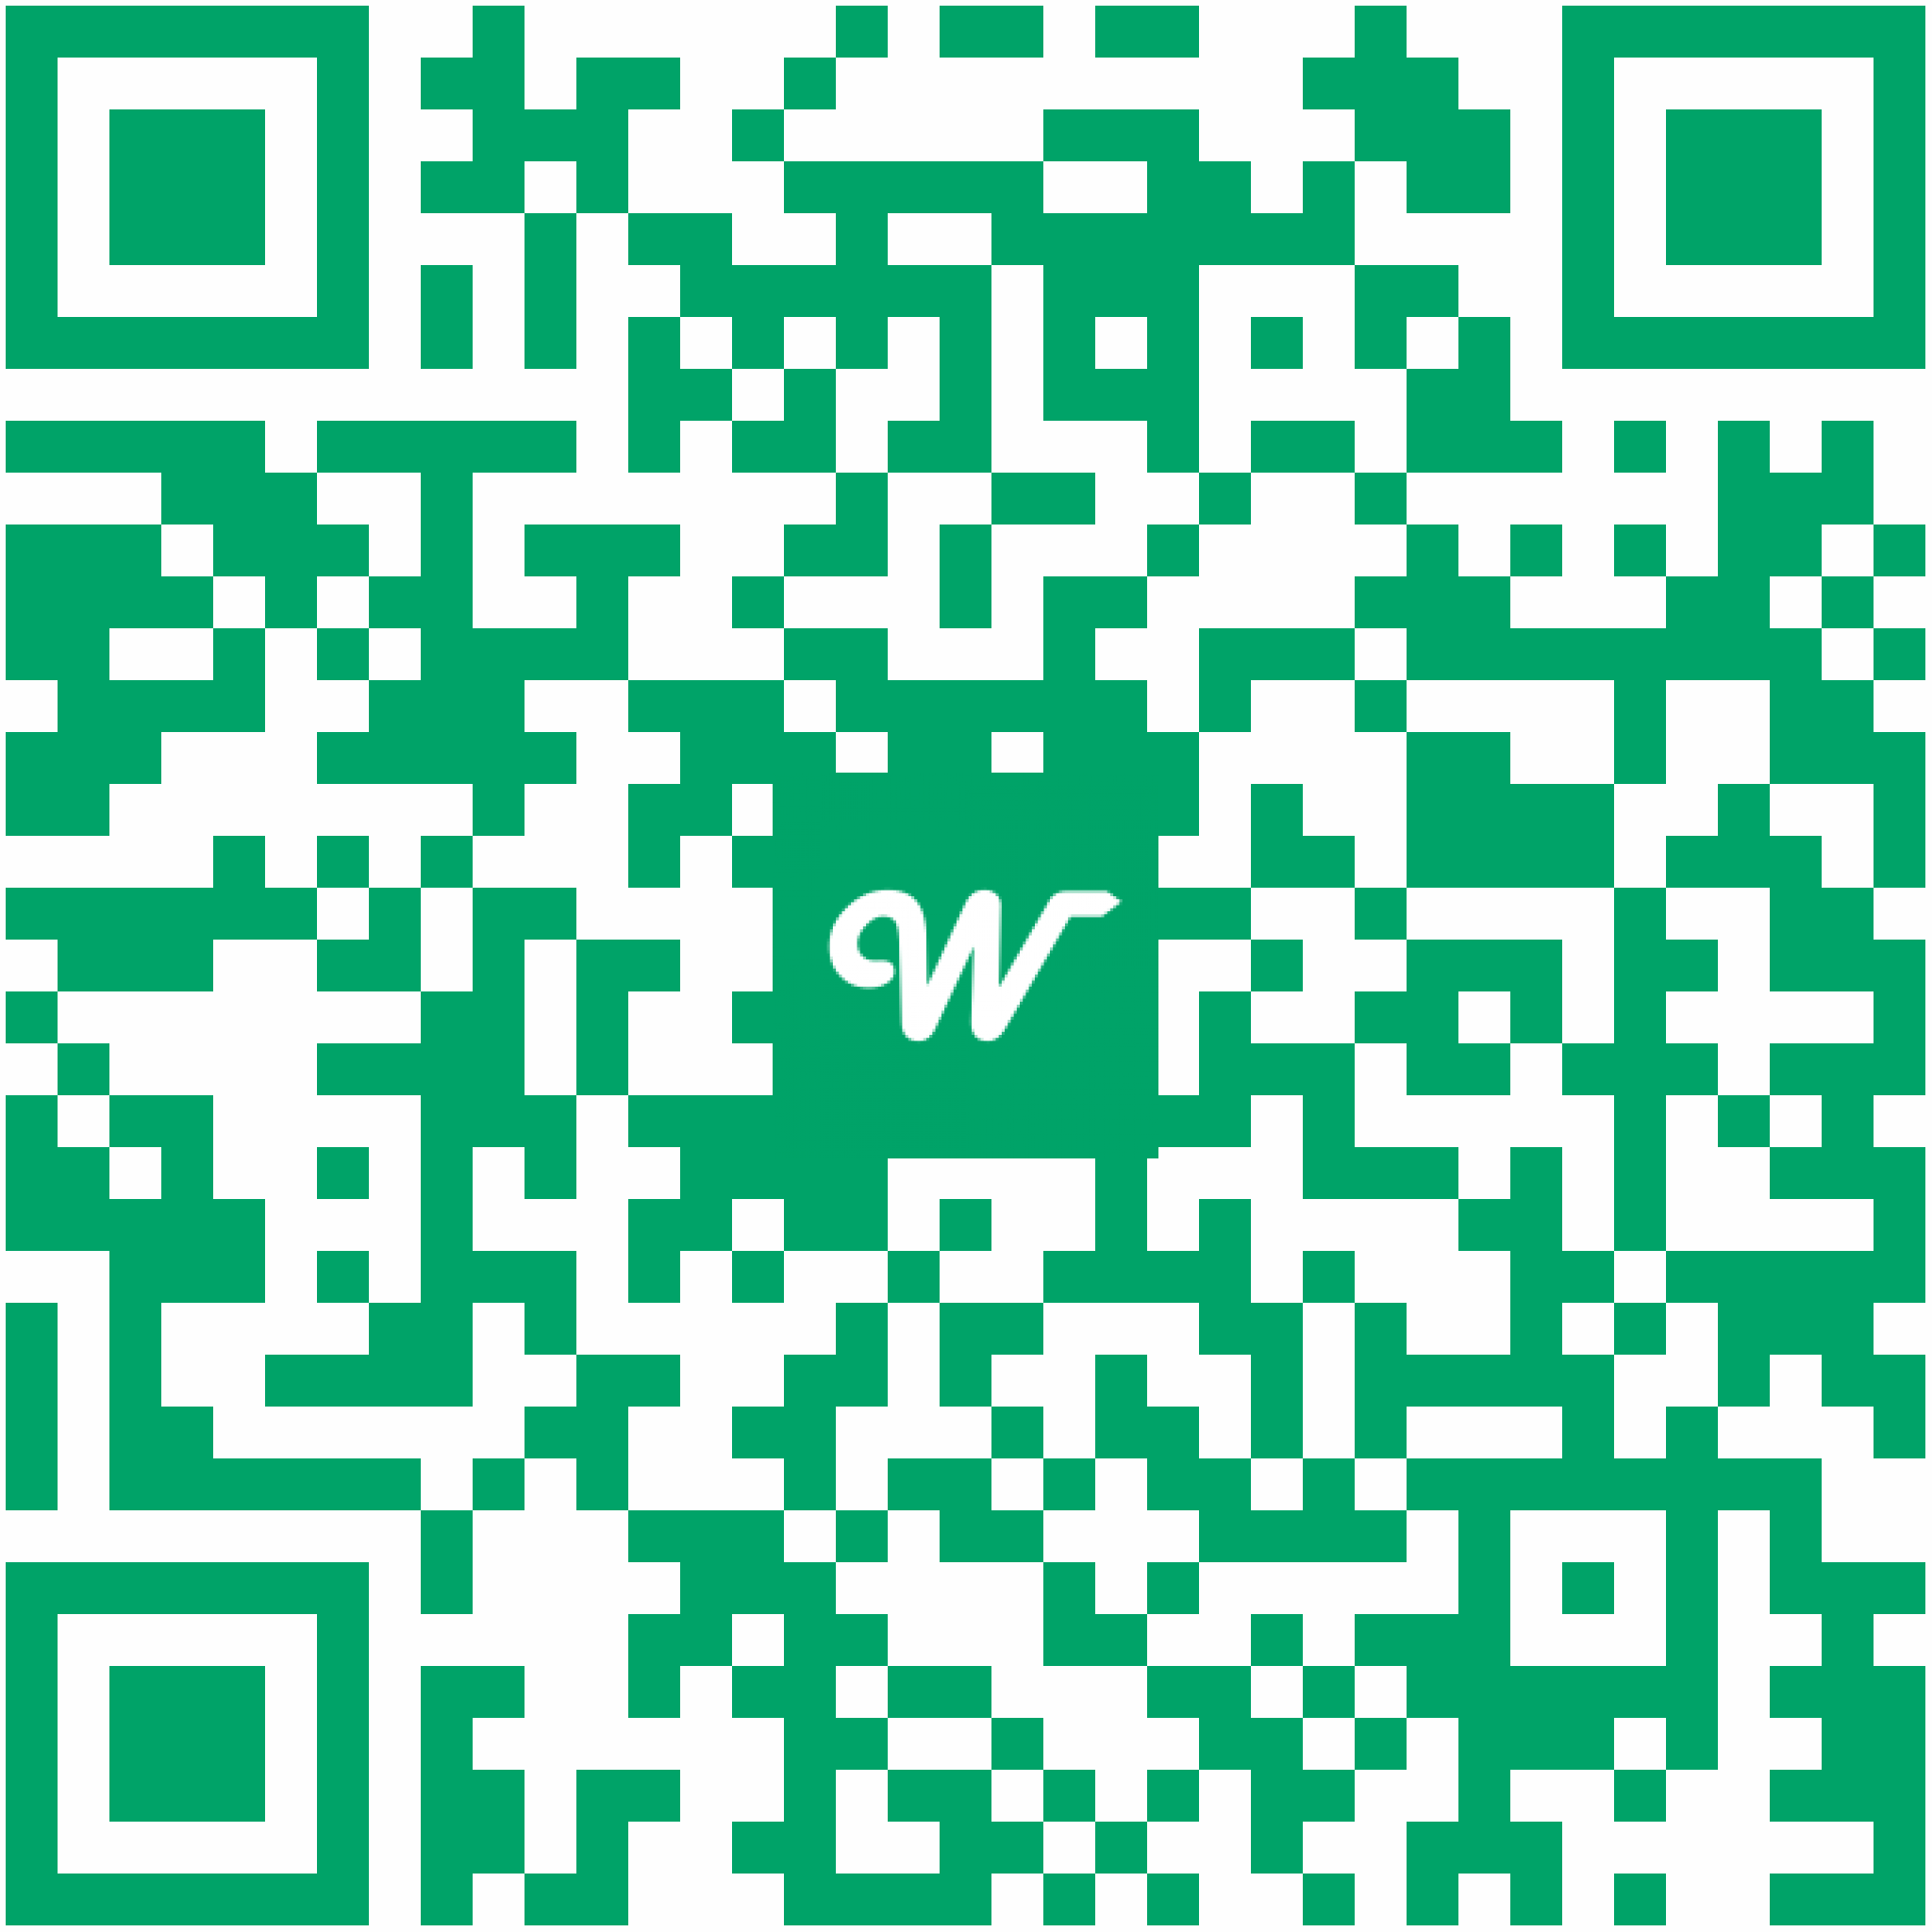 Printable QR code for Sun Inns Hotel Kota Damansara